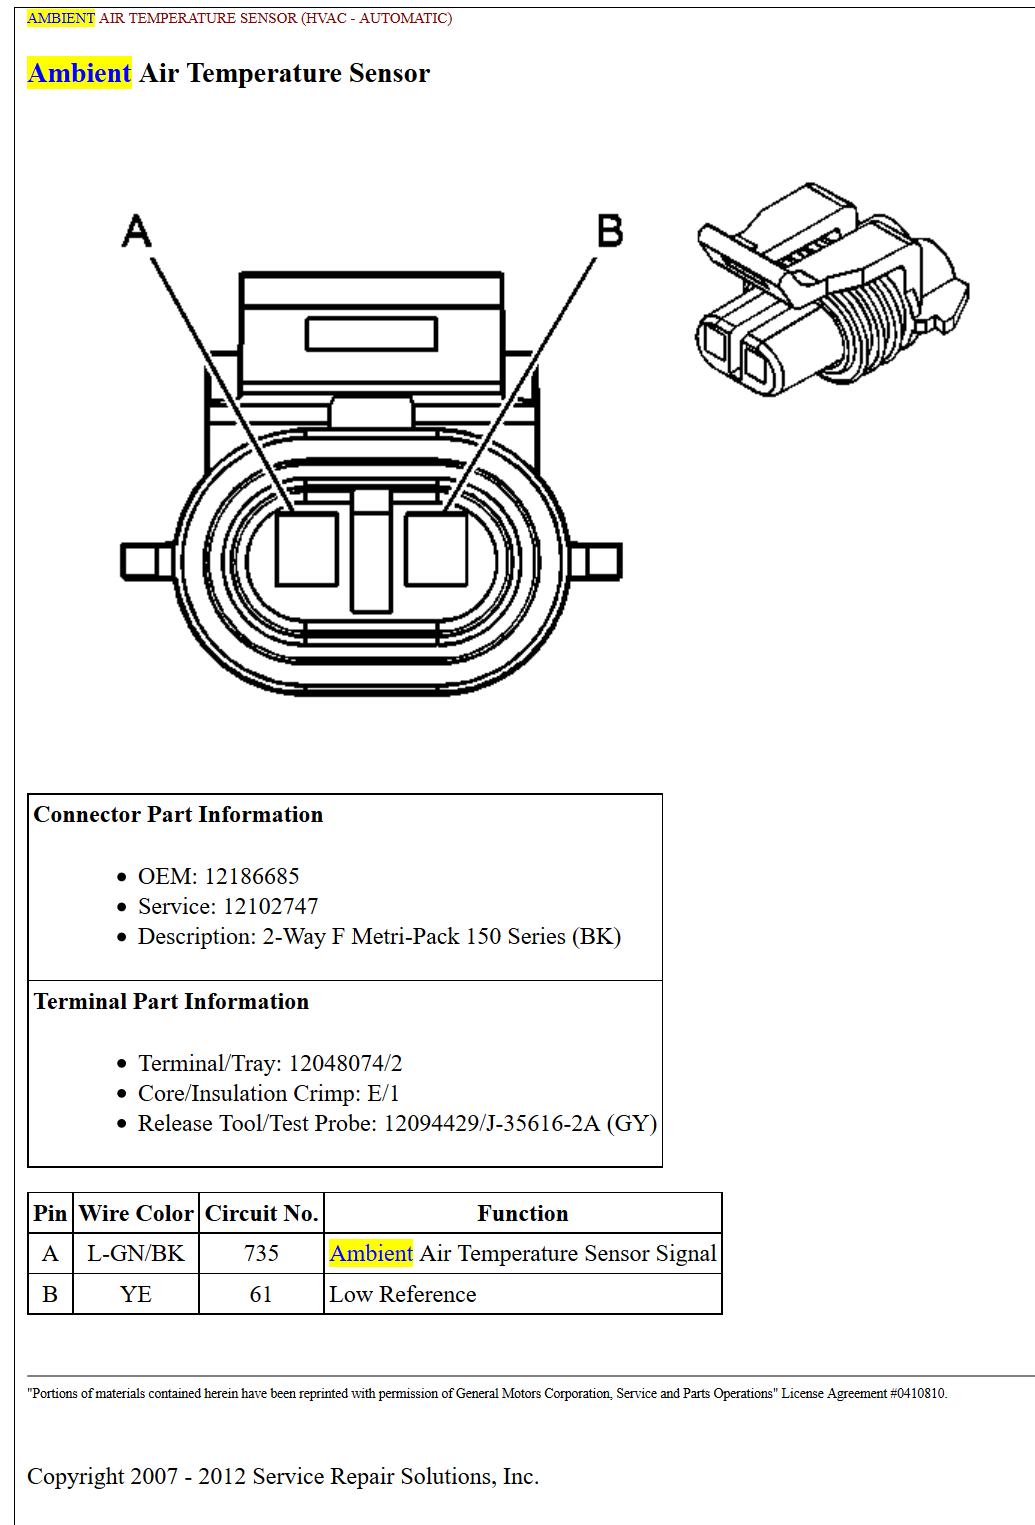 Pin Out Or Wiring Diagram For C6 Ambient Air Sensor - Corvetteforum